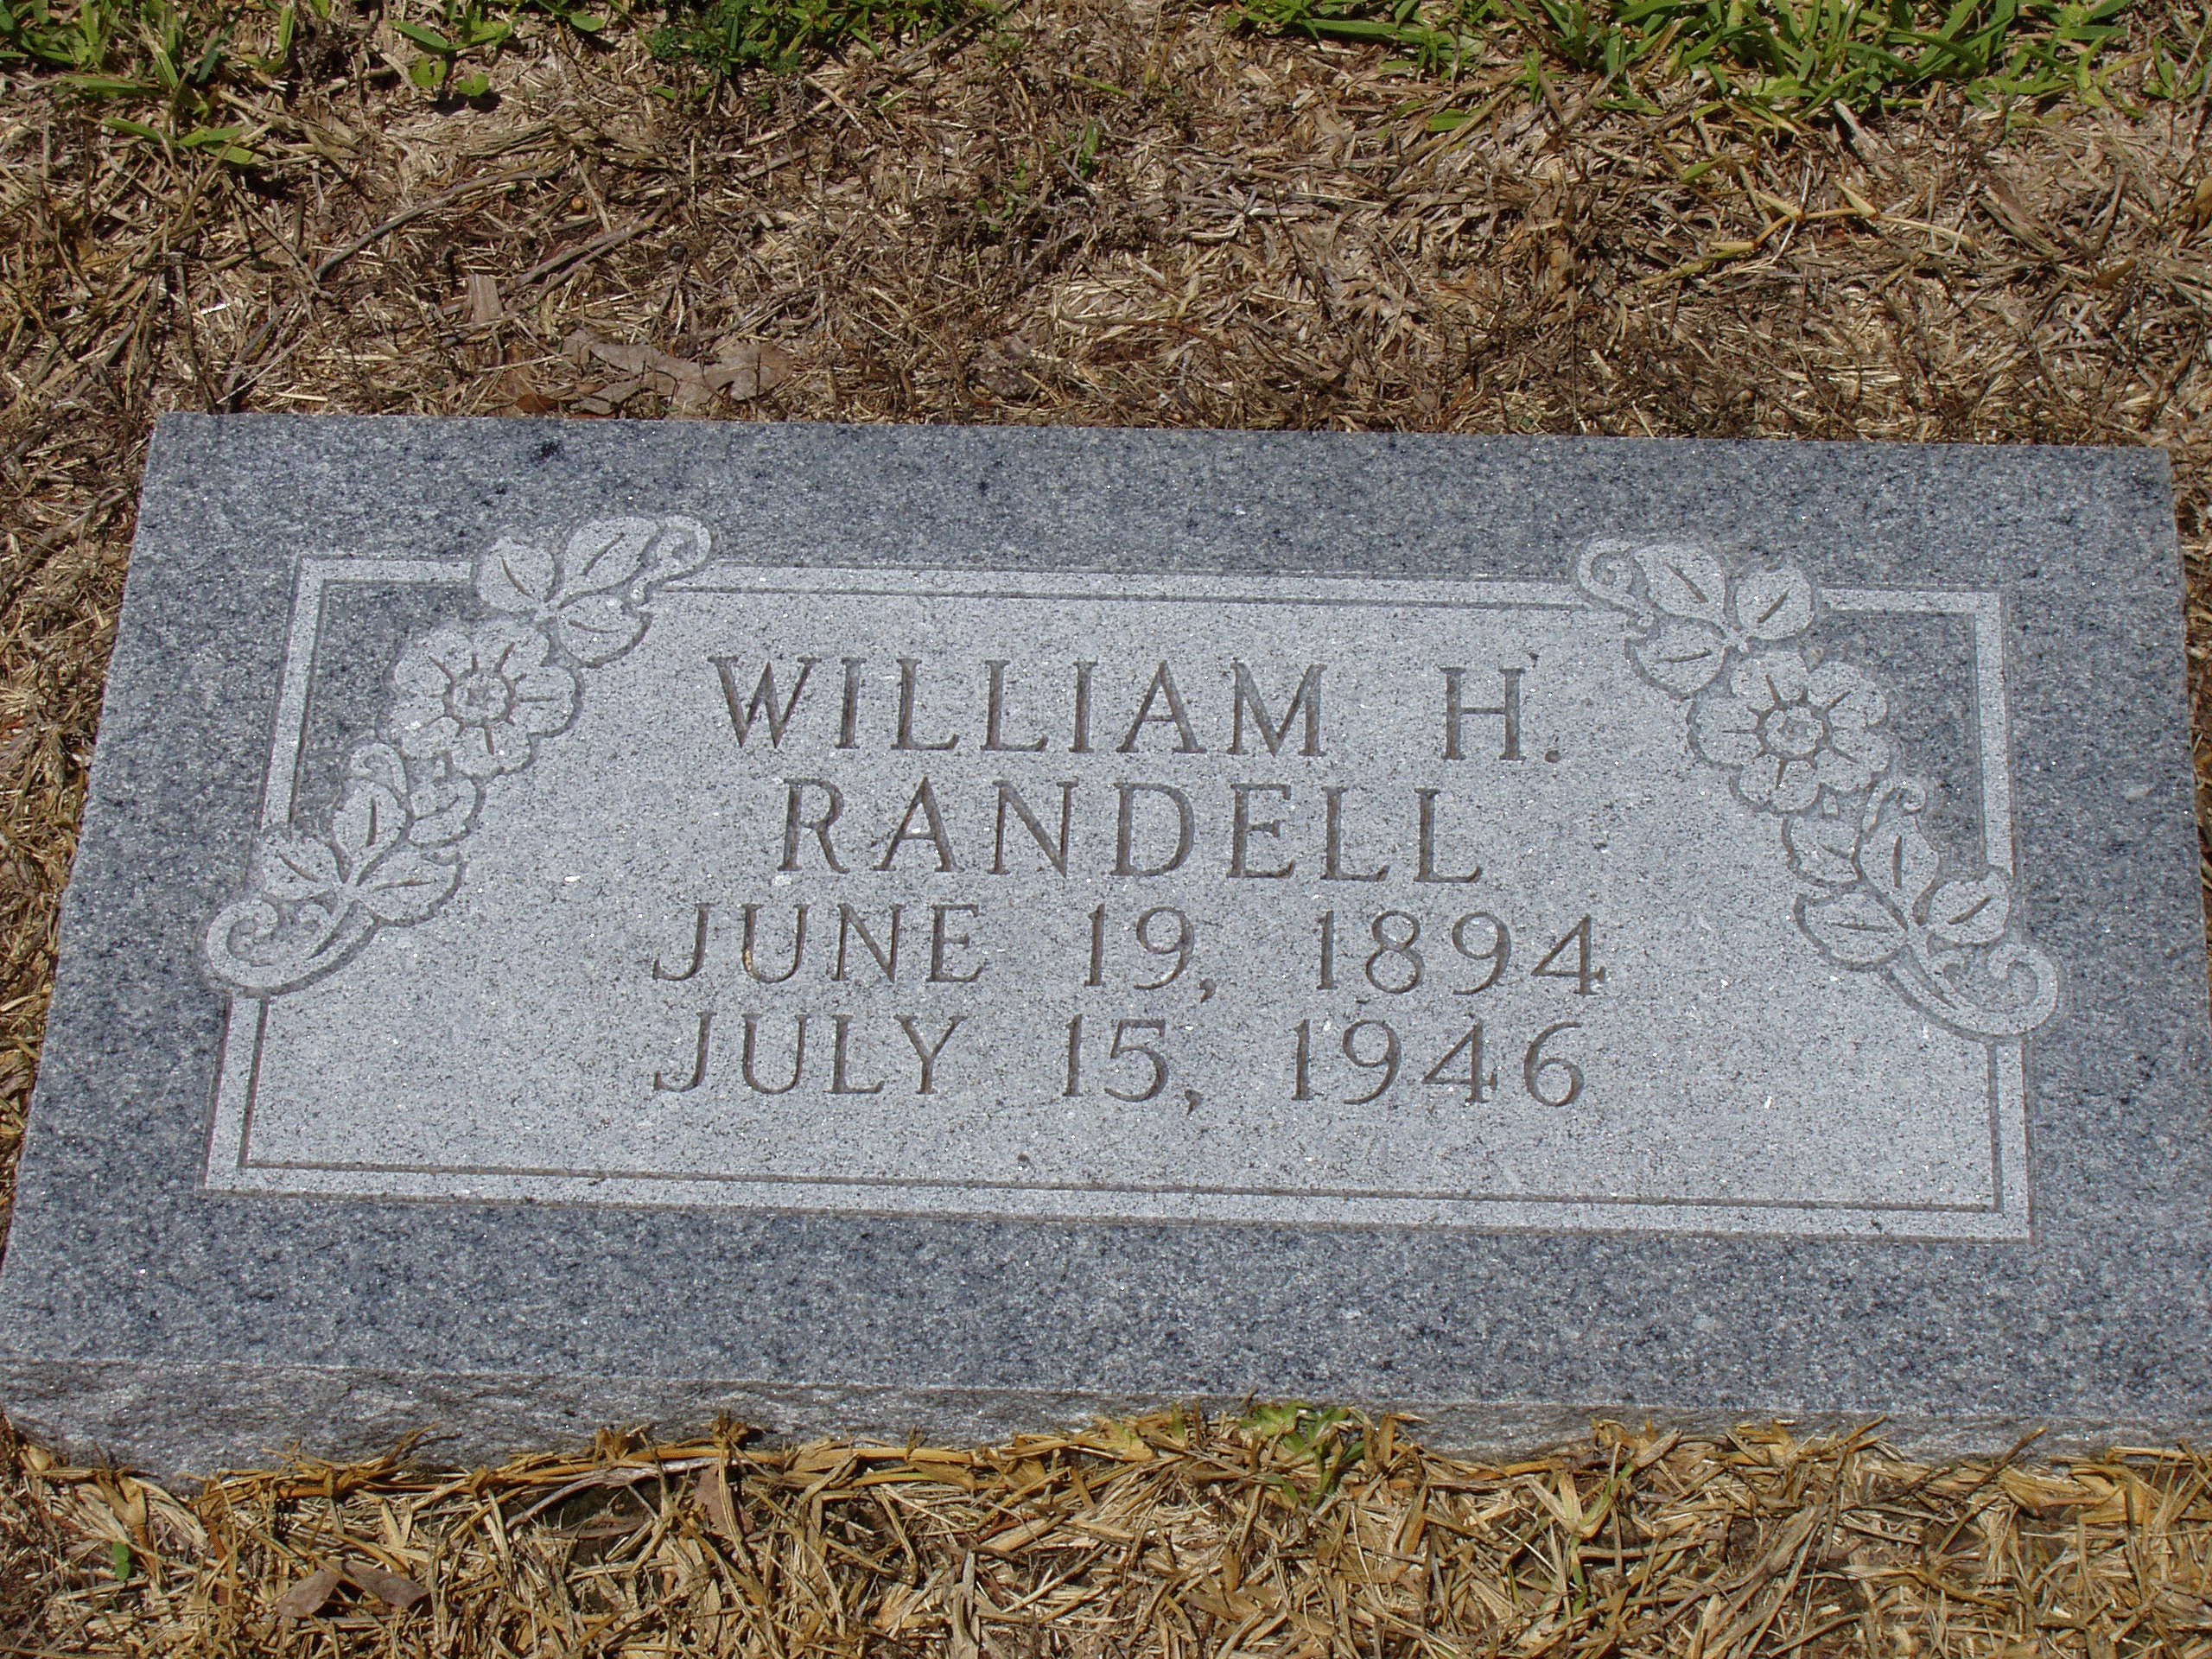 William H Randell